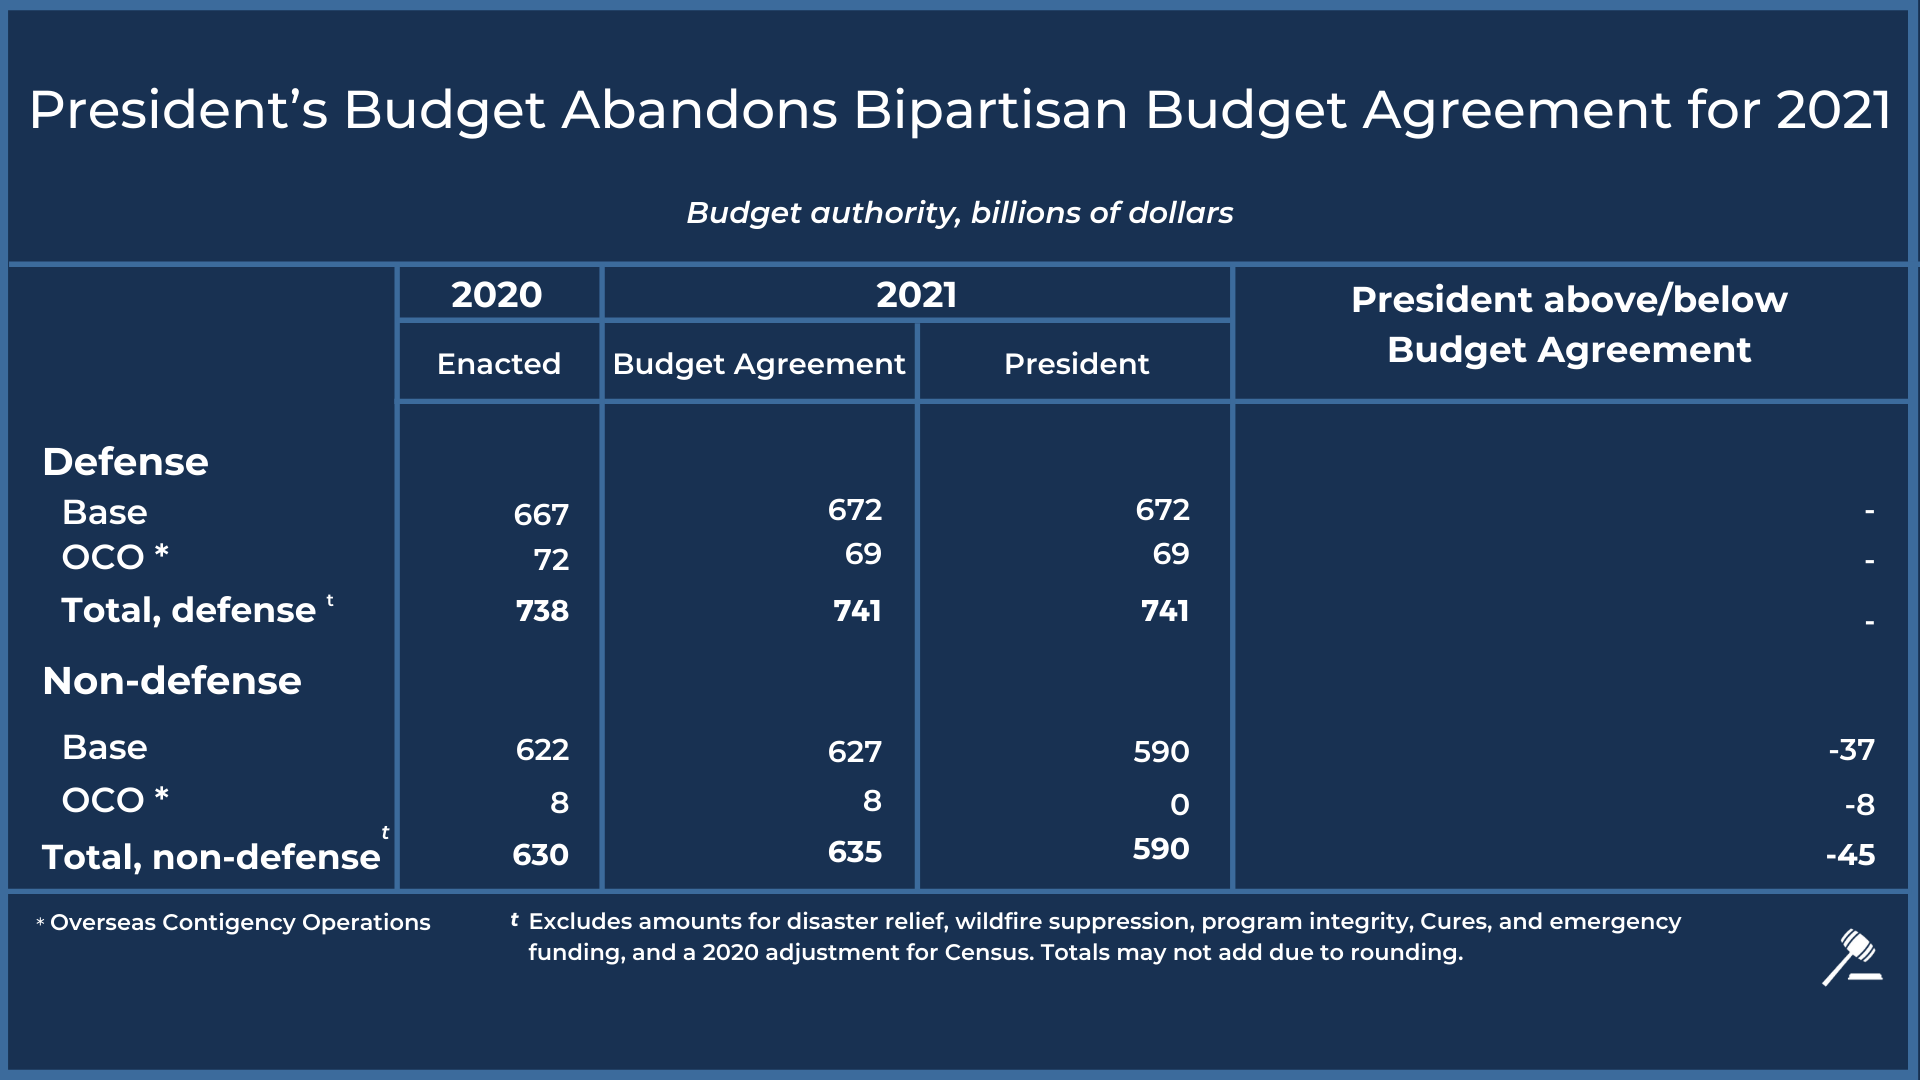 The president's budget abandons bipartisan budget agreement for 2021